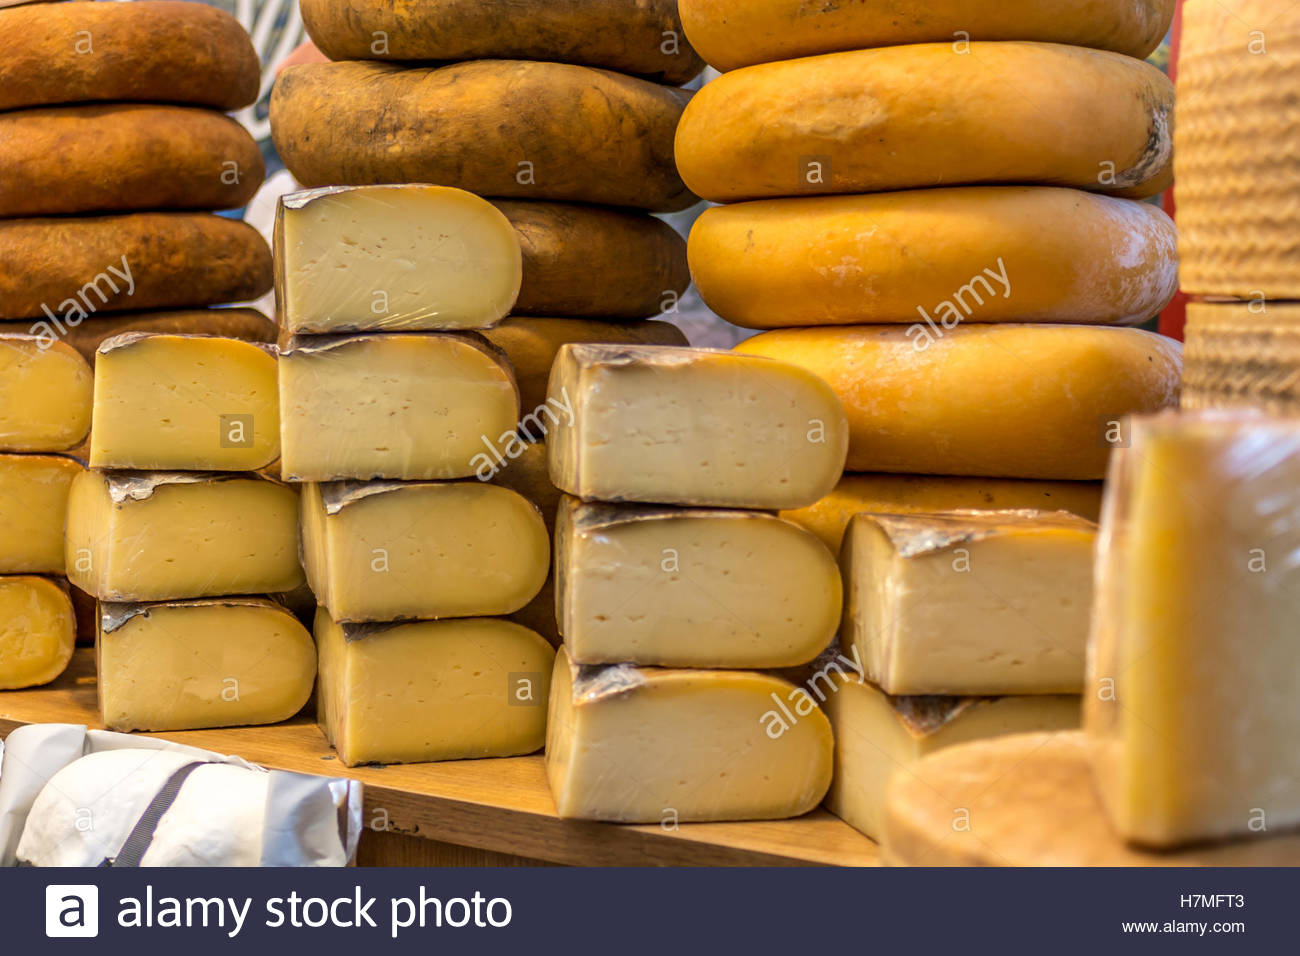 Artisan cheeses exposed in the artisan food market. - Stock Image